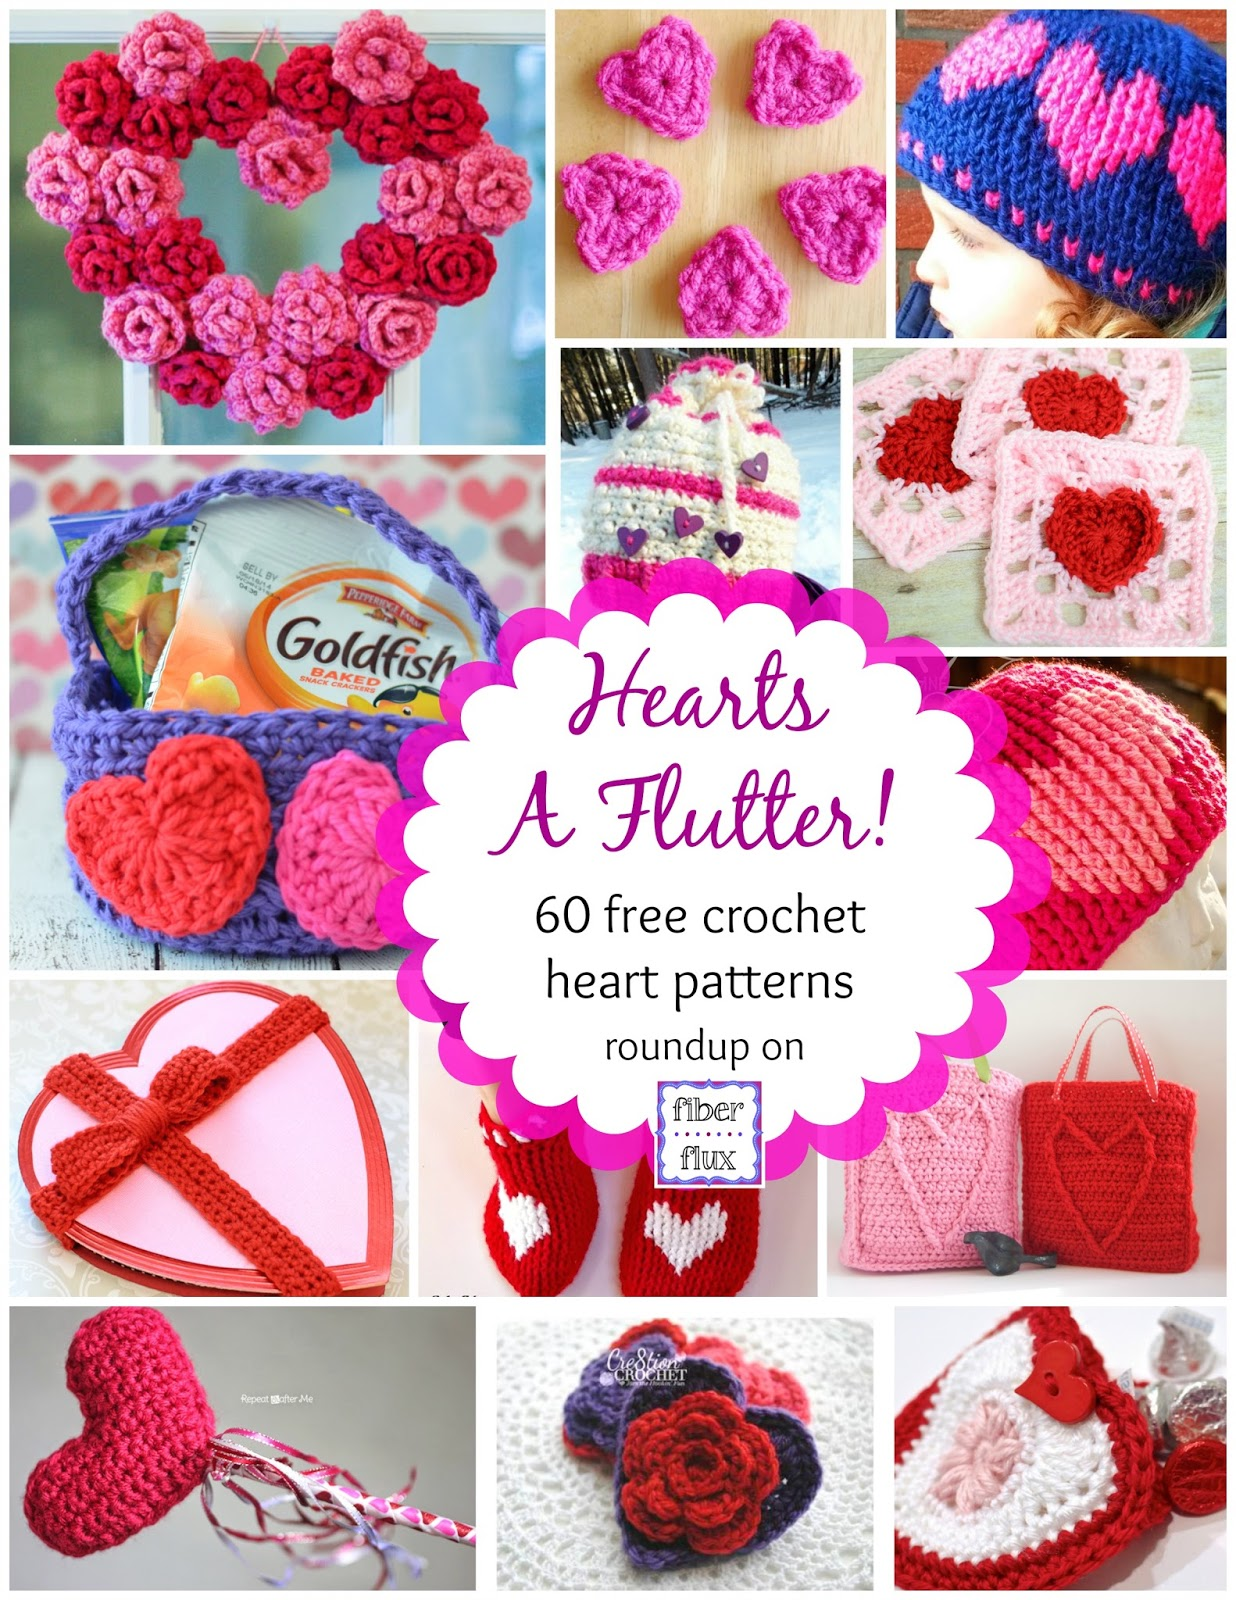 144b8ef27ac Here is a gigantic collection of beautiful crochet projects full of hearts.  Included are bags